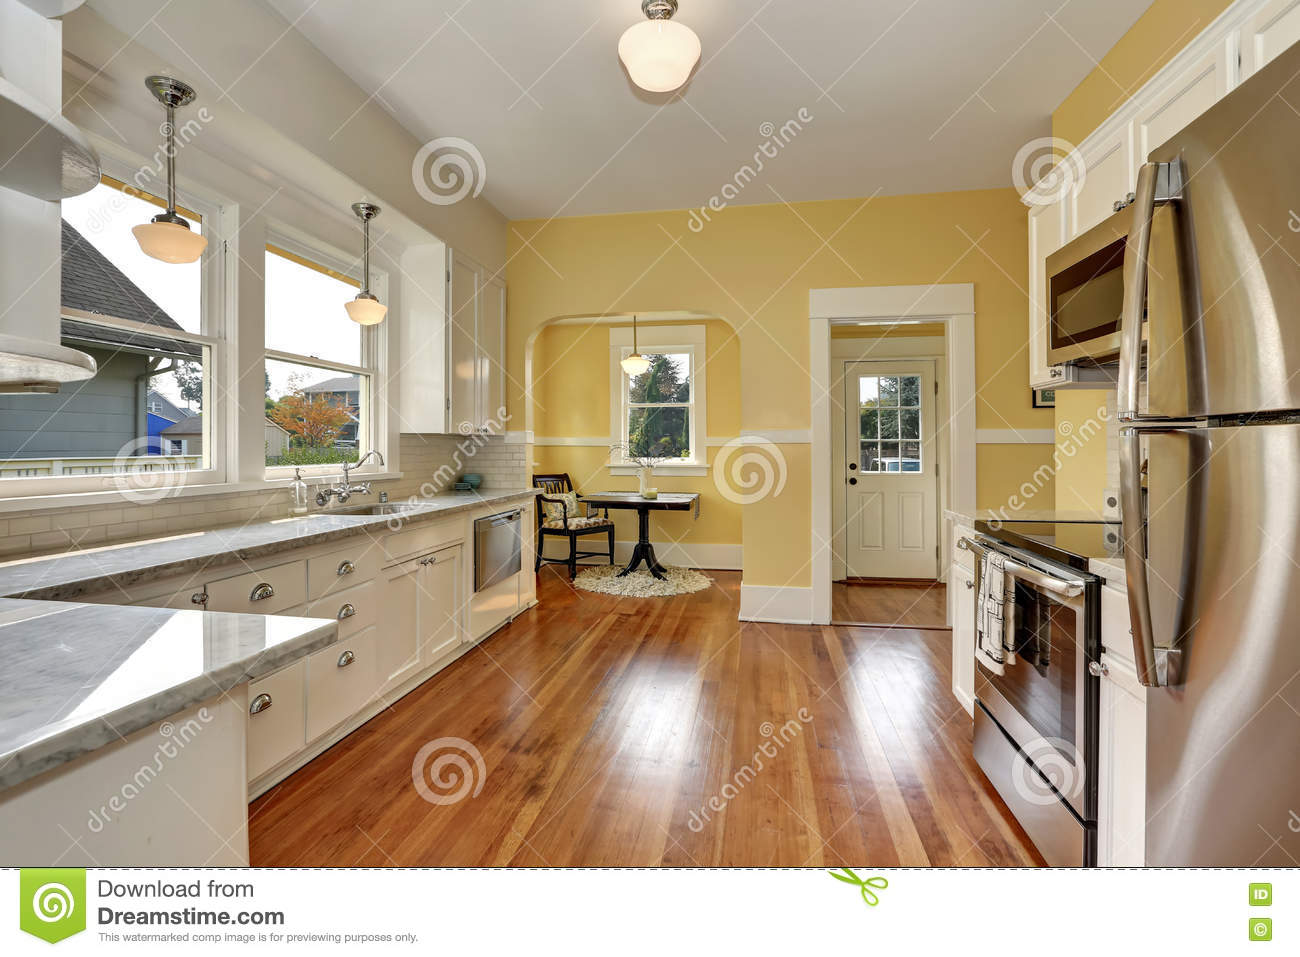 Kitchen Interior With White Cabinets Yellow Walls And